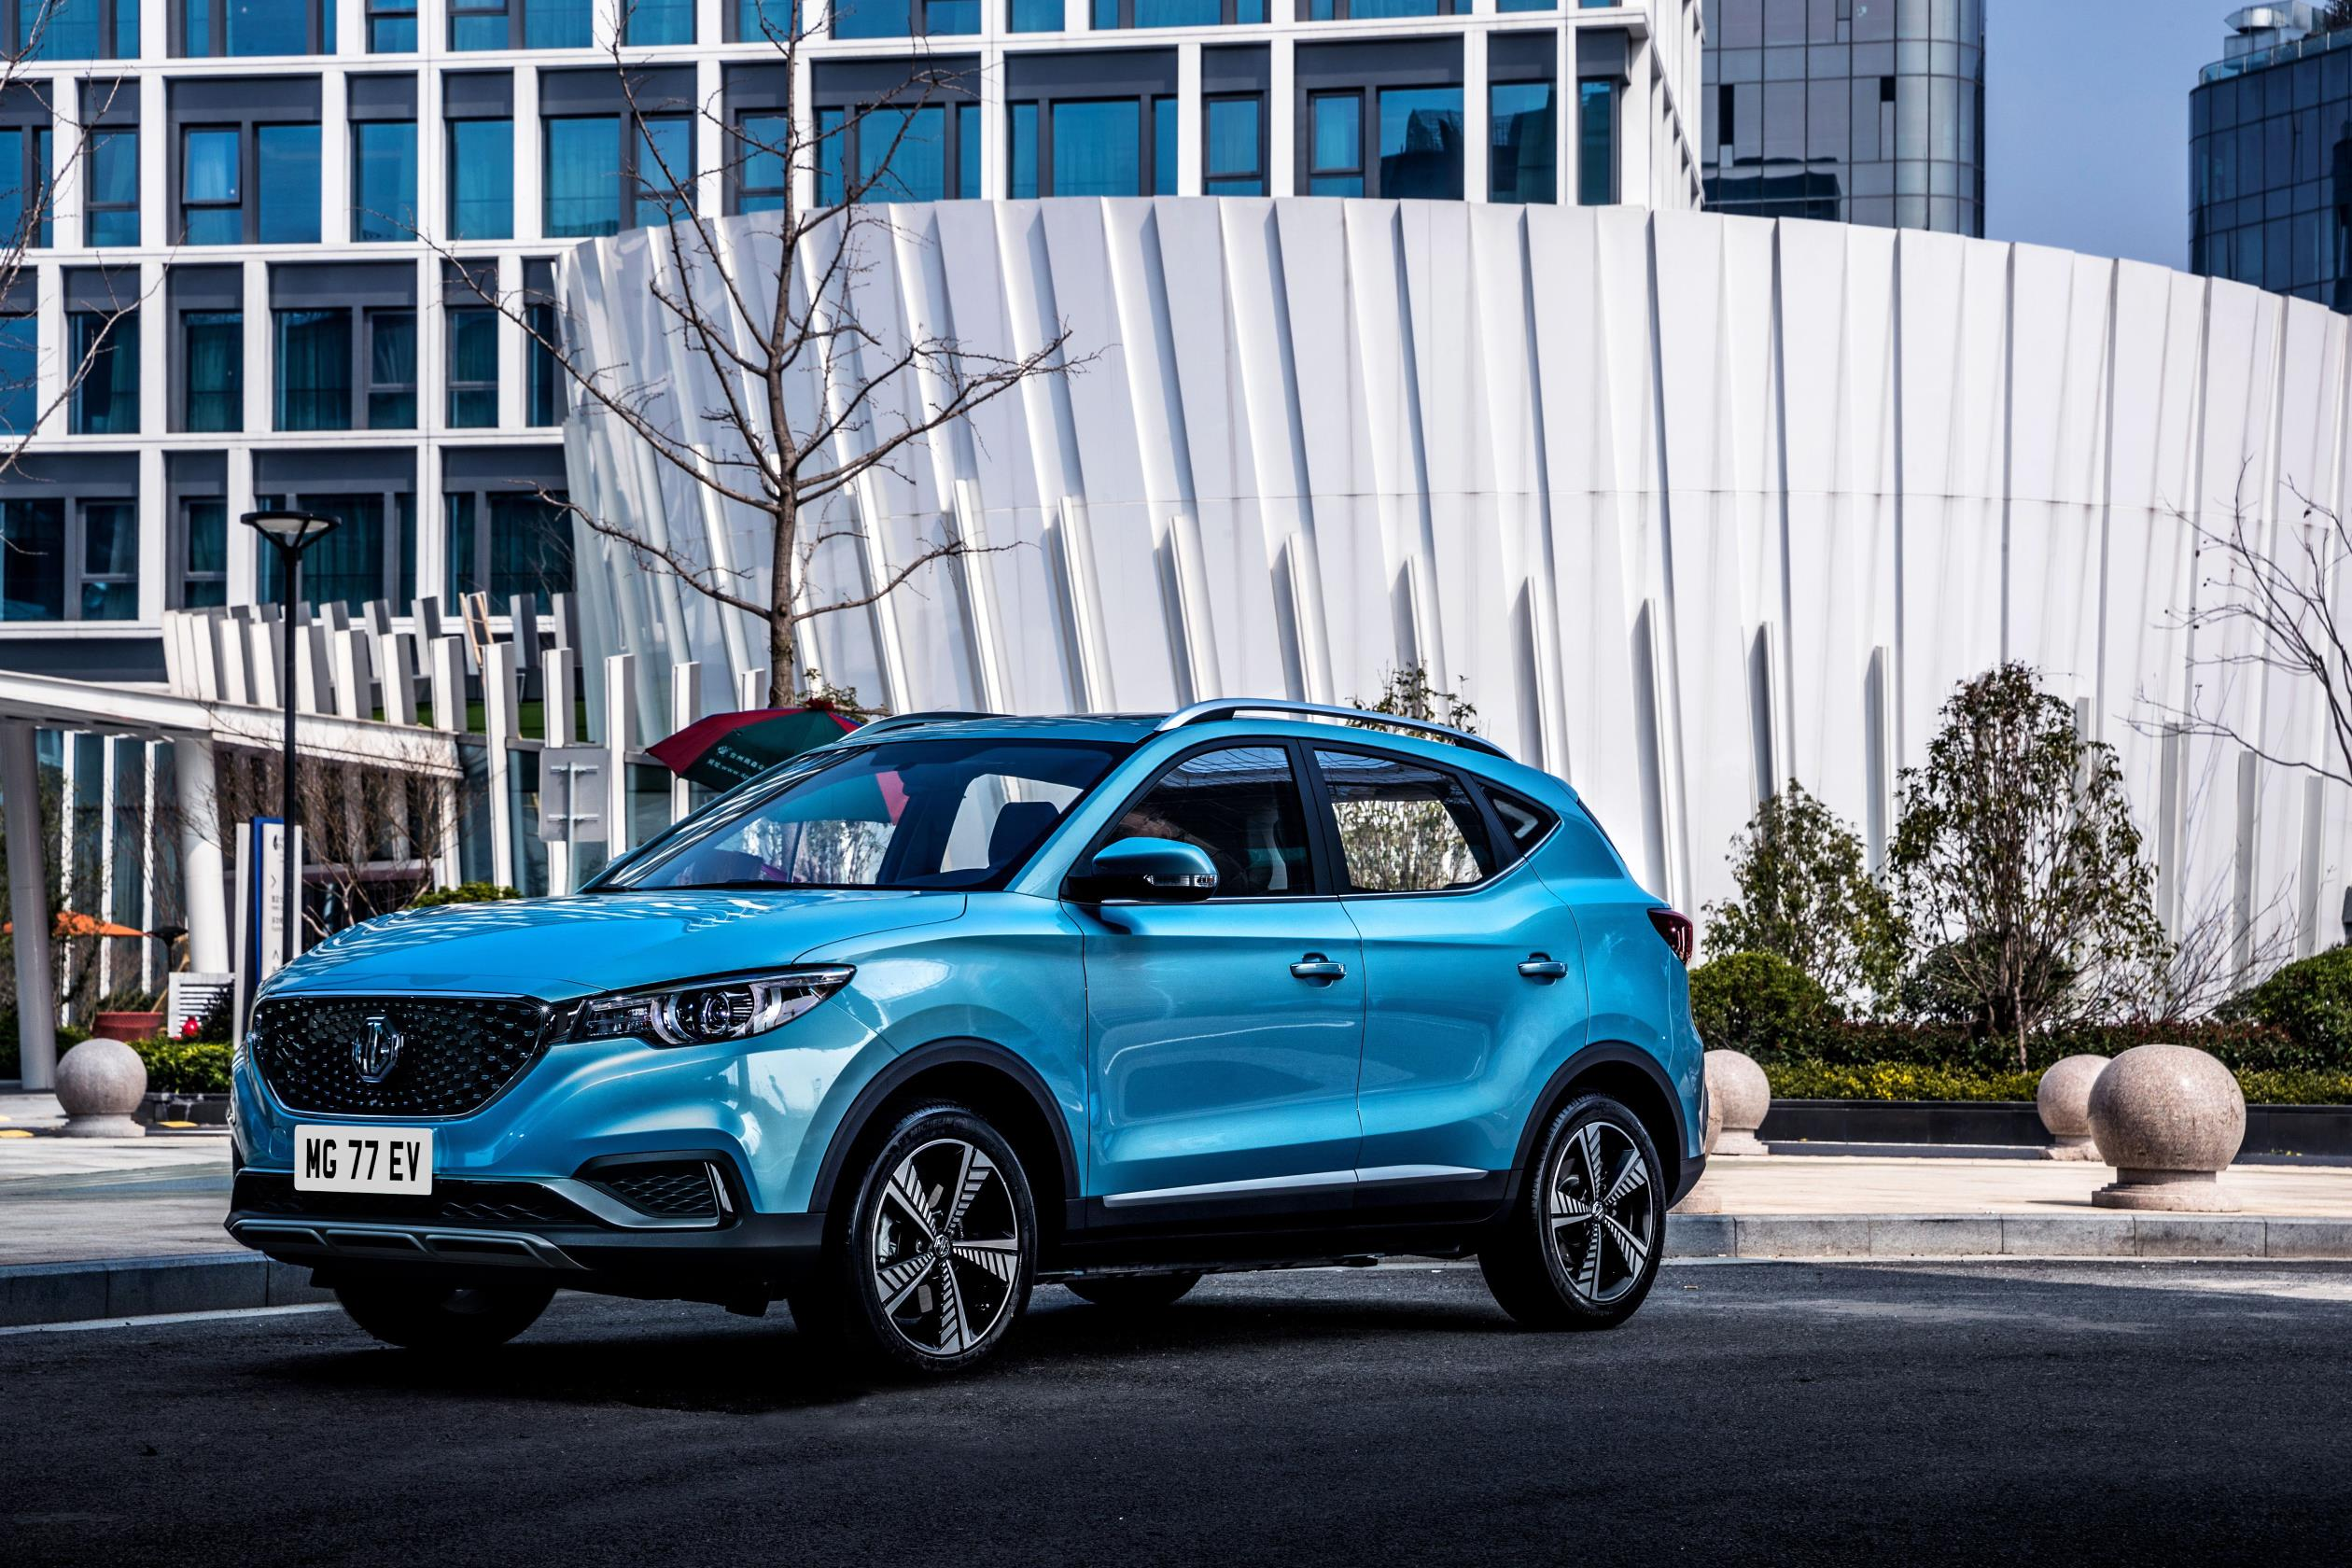 MG Hector Plus - Specifications, Features, Price, Competitors